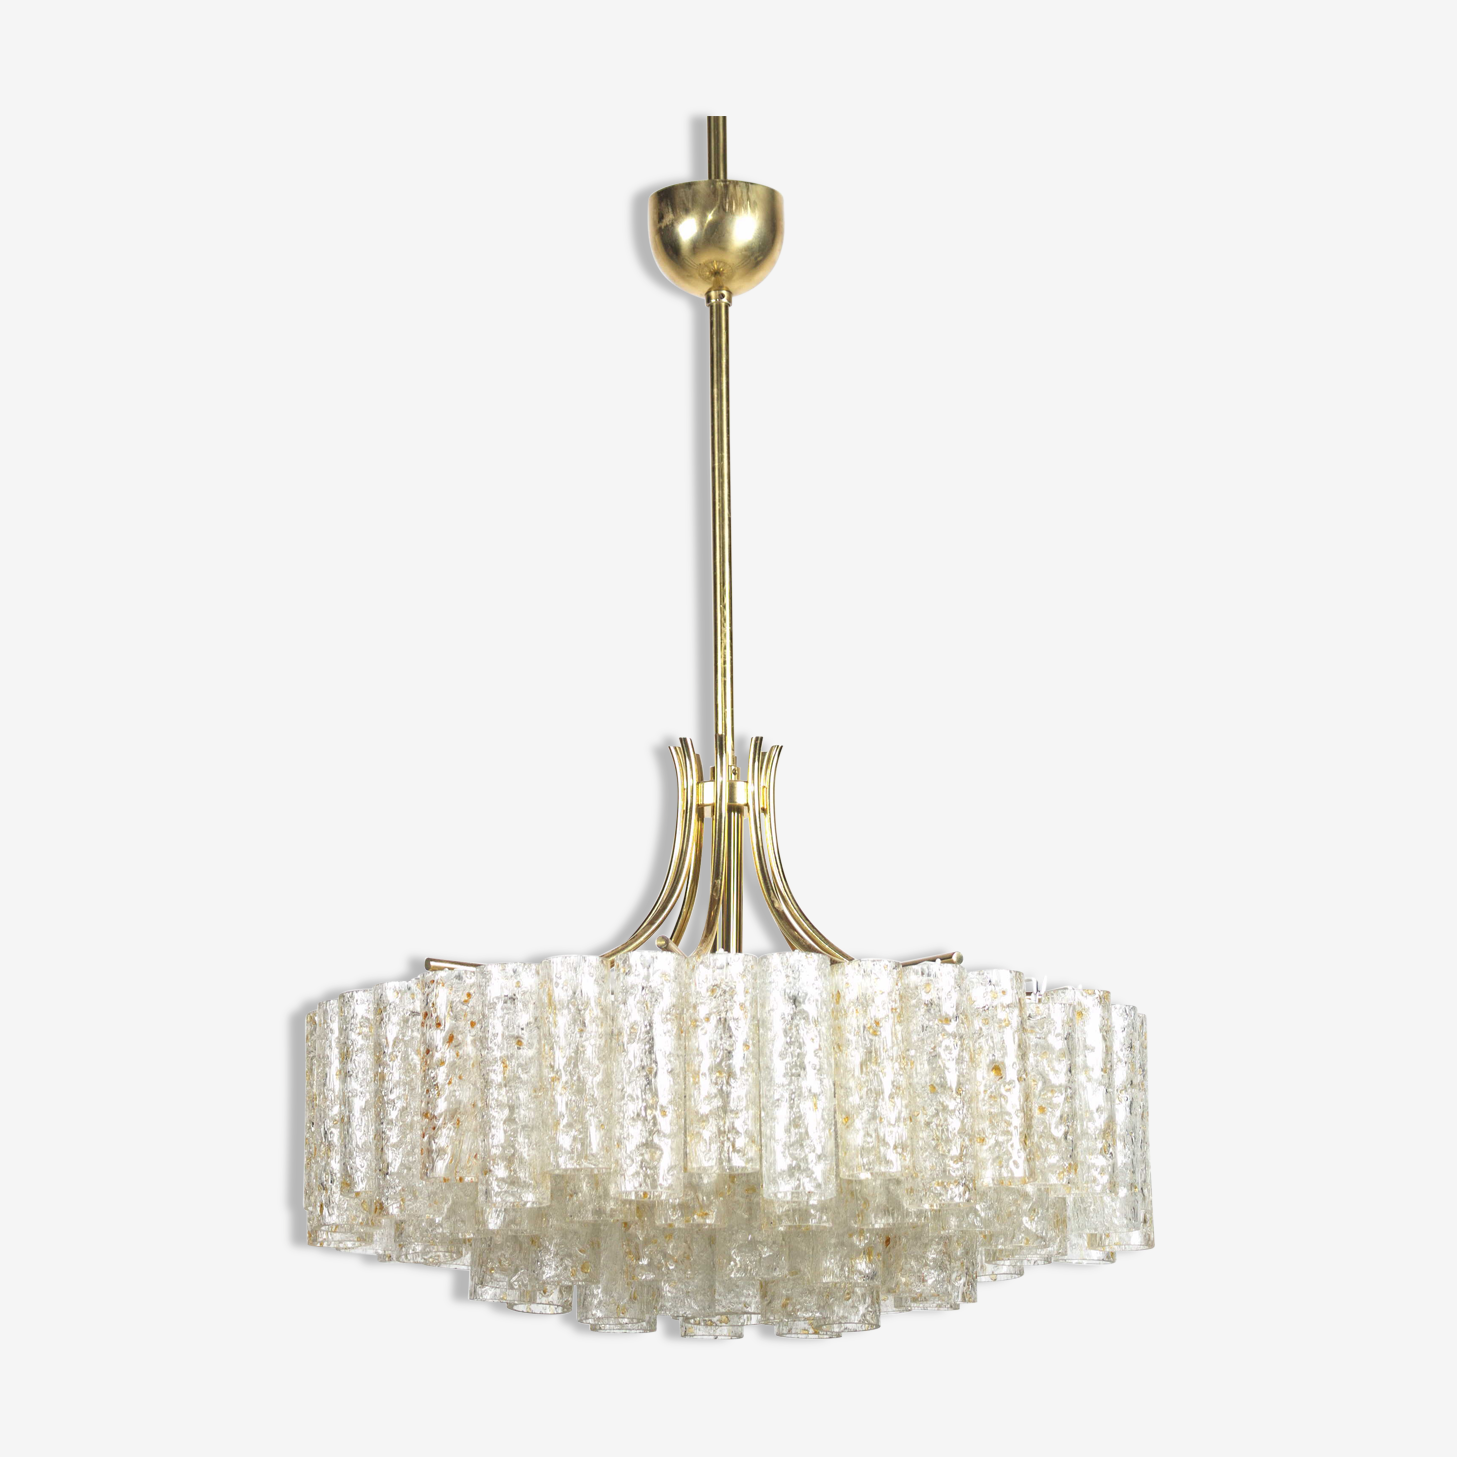 Chandelier, Doria, 4 rows, vintage, 60s complete and cleaned